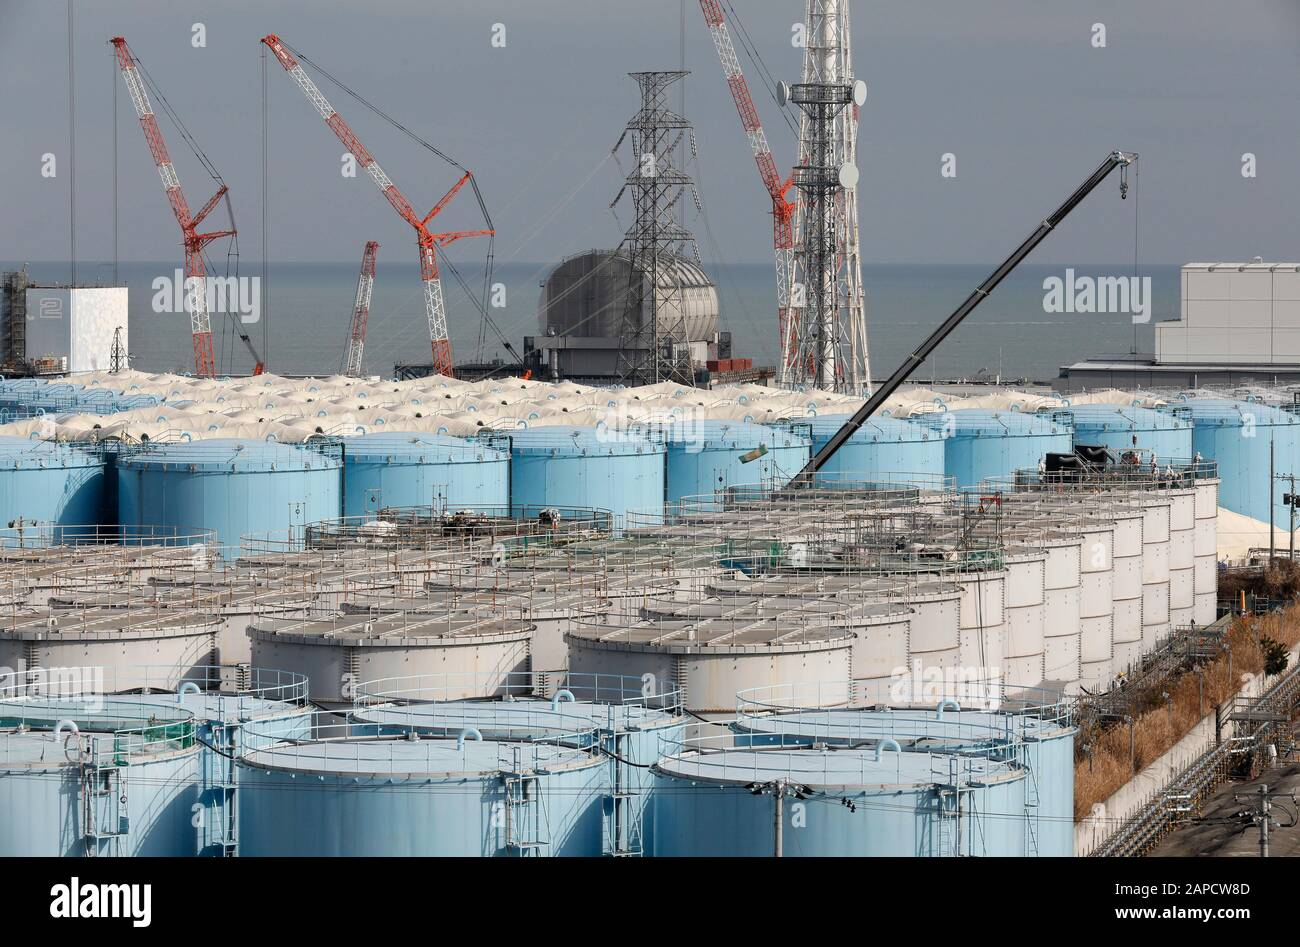 Okuma, Fukushima, Japan. 22nd Jan, 2020. Workers demolish old storage tanks included water processed in ALPS(Multi-nuclide retrieval equipment) at tsunami-devastated Tokyo Electric Power Company (TEPCO) Fukushima Daiichi Nuclear Power Plant in Okuma town, Fukushima Prefecture, 22 January 2020 after transferring to new tanks. The storage tanks including water processed in the ALPS will be full around summer of 2022, TEPCO has told. Japanese government will need to decide soon how manage the processed water still including tritium. The Unit 2 reactor house in left rear, the Unit 3 reactor hou Stock Photo